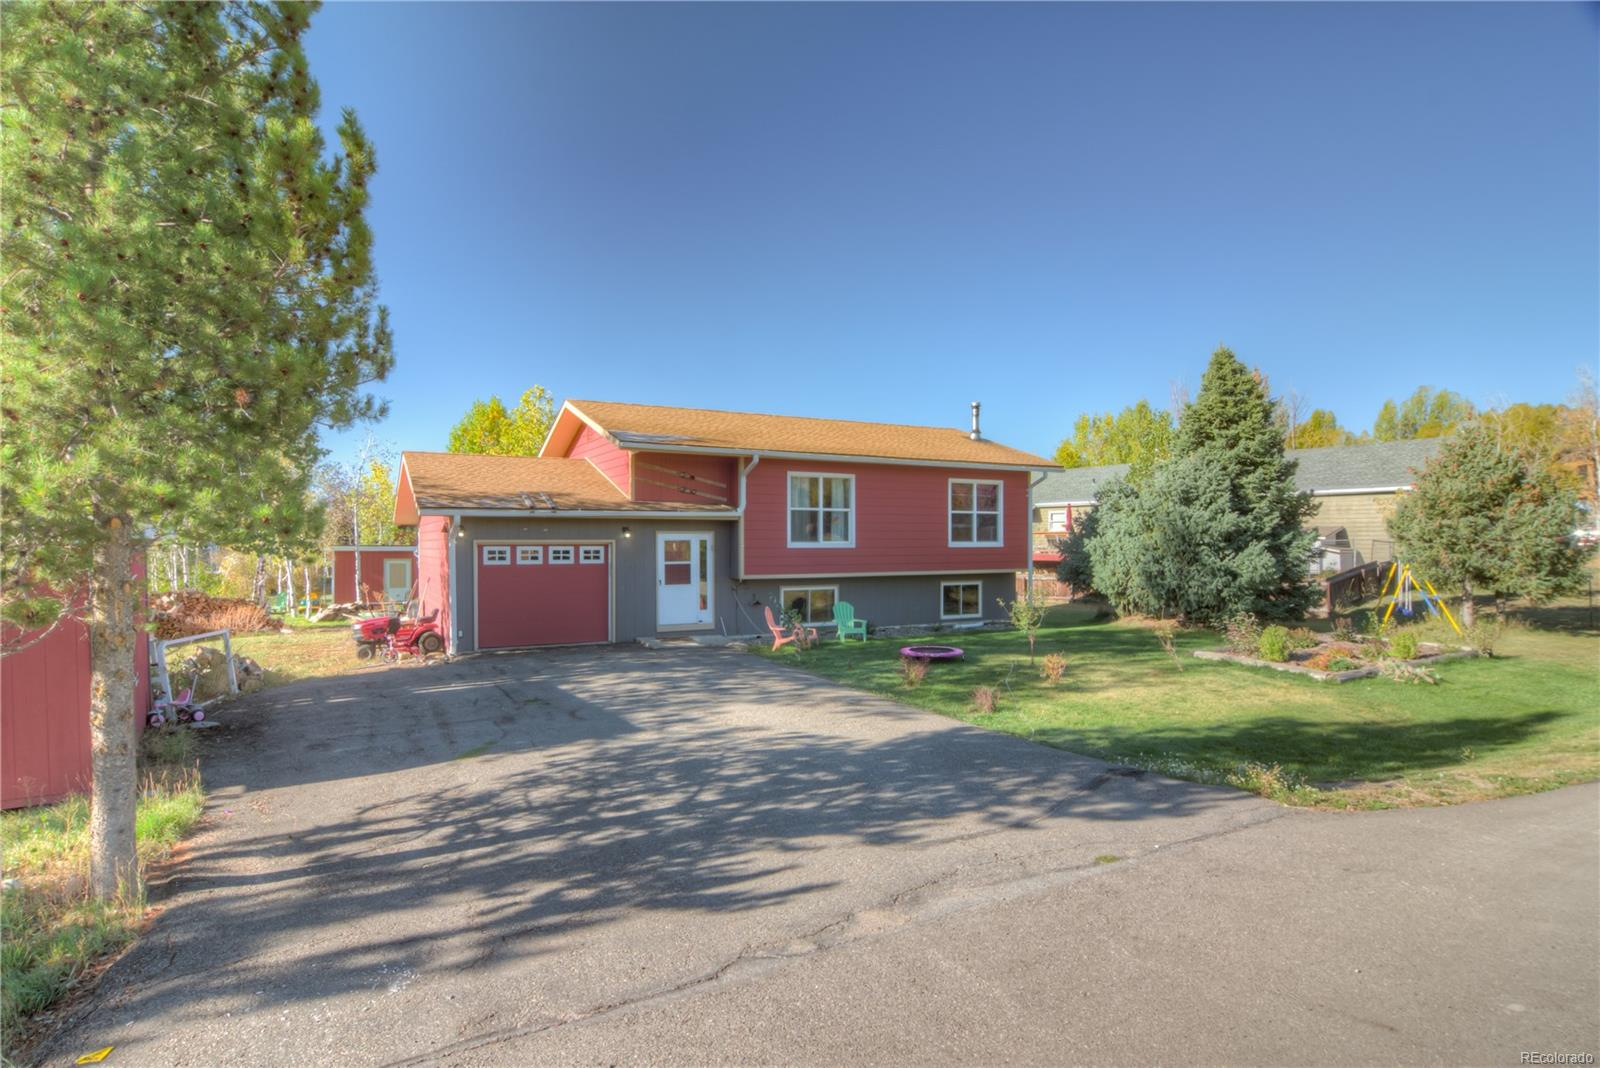 40375 Anchor Way, Steamboat Springs, CO 80487 - Steamboat Springs, CO real estate listing